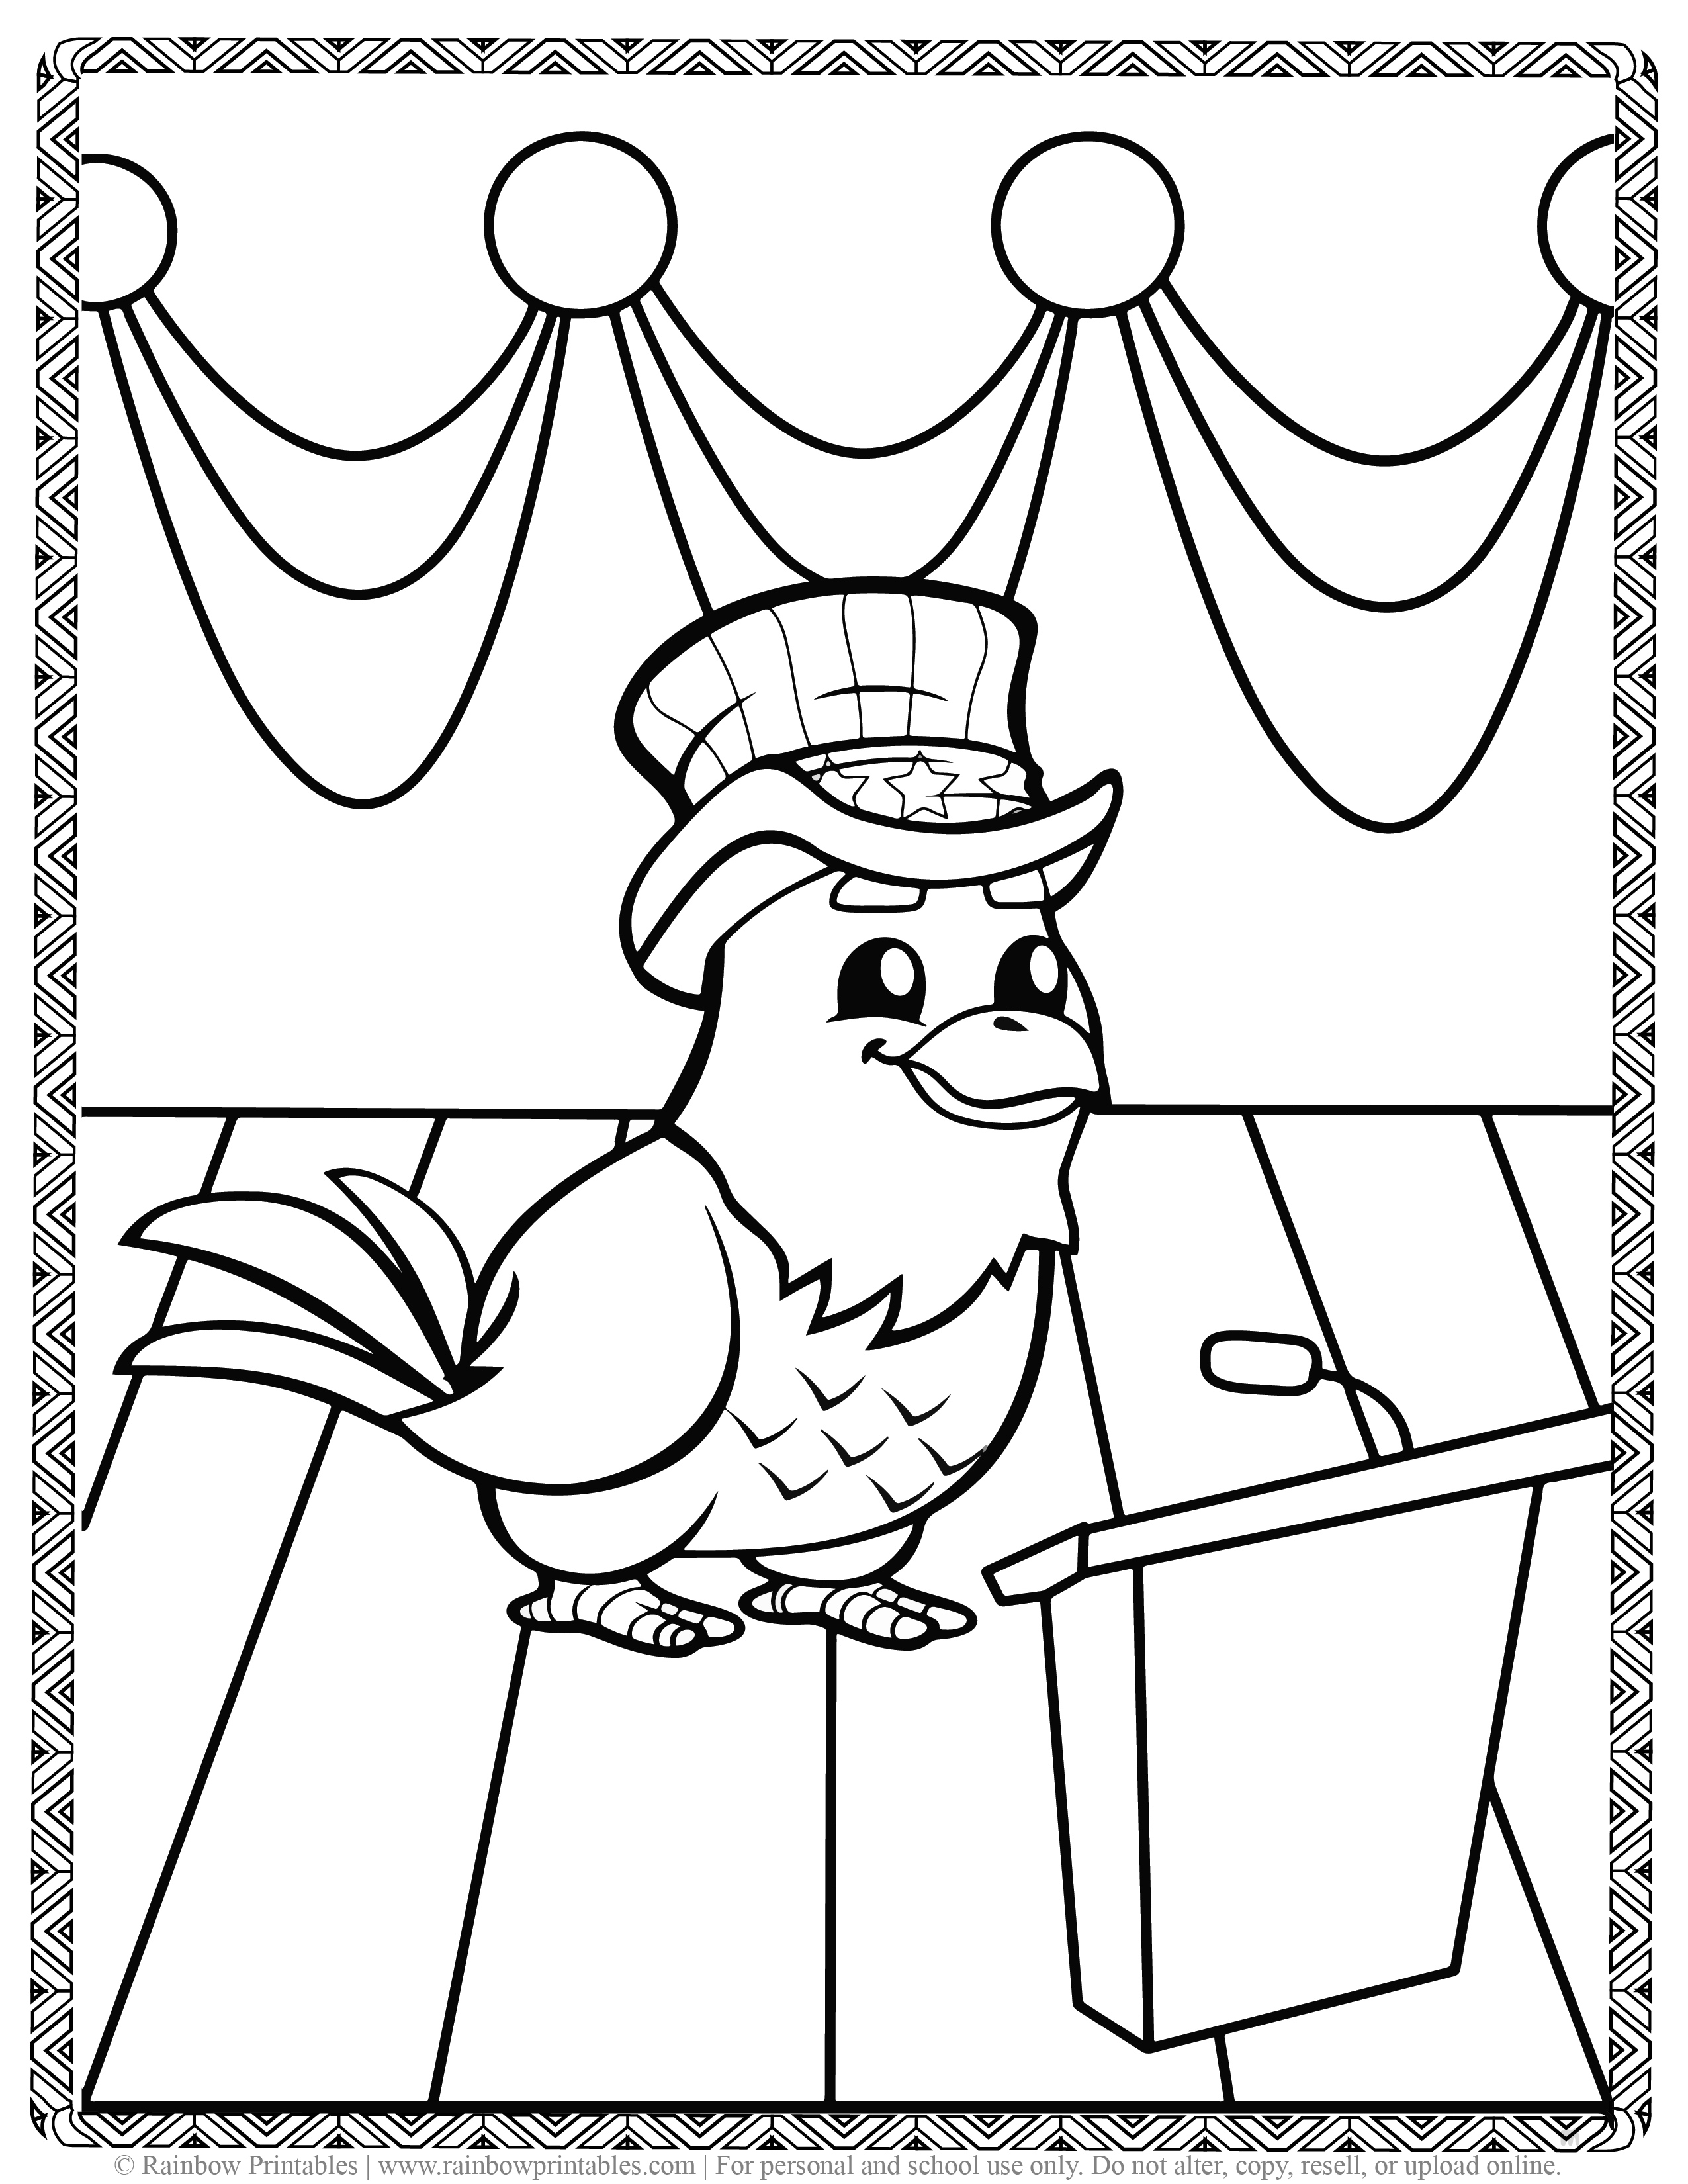 Cute Bald Eagle in Top Hat President Patriotic July 4th independence day Printables for Children, Toddlers, America Coloring Pages, Activity for Preschool, Freedom